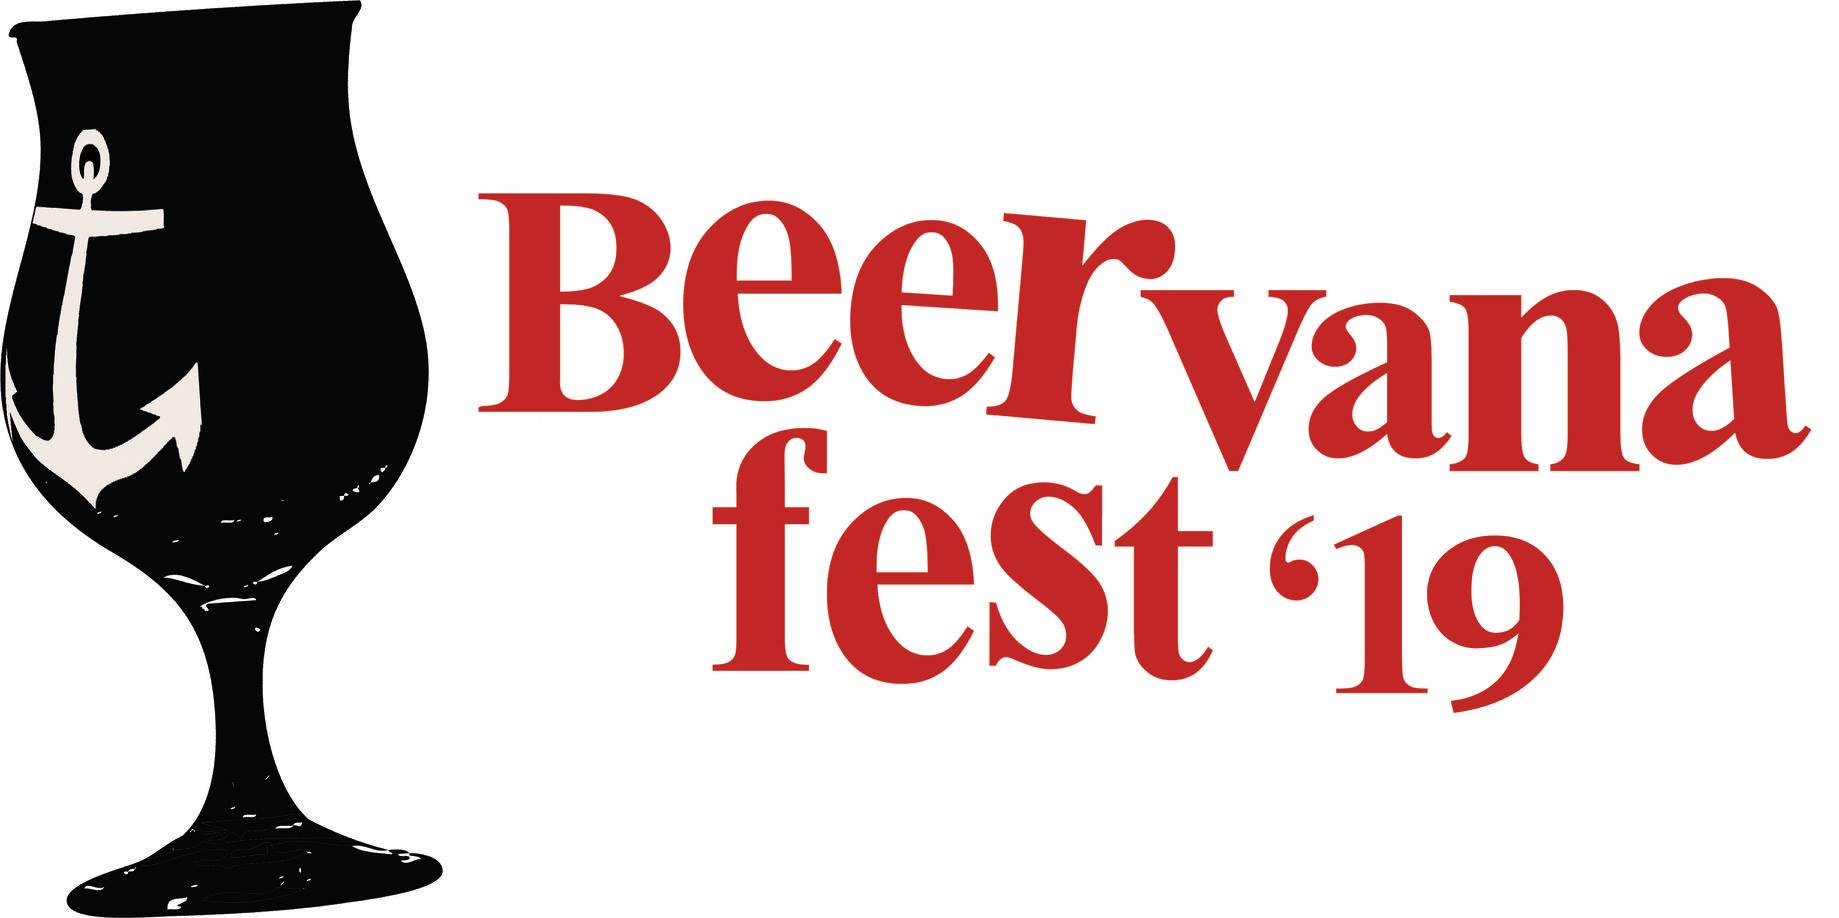 October 26, 2019: Beervana Fest